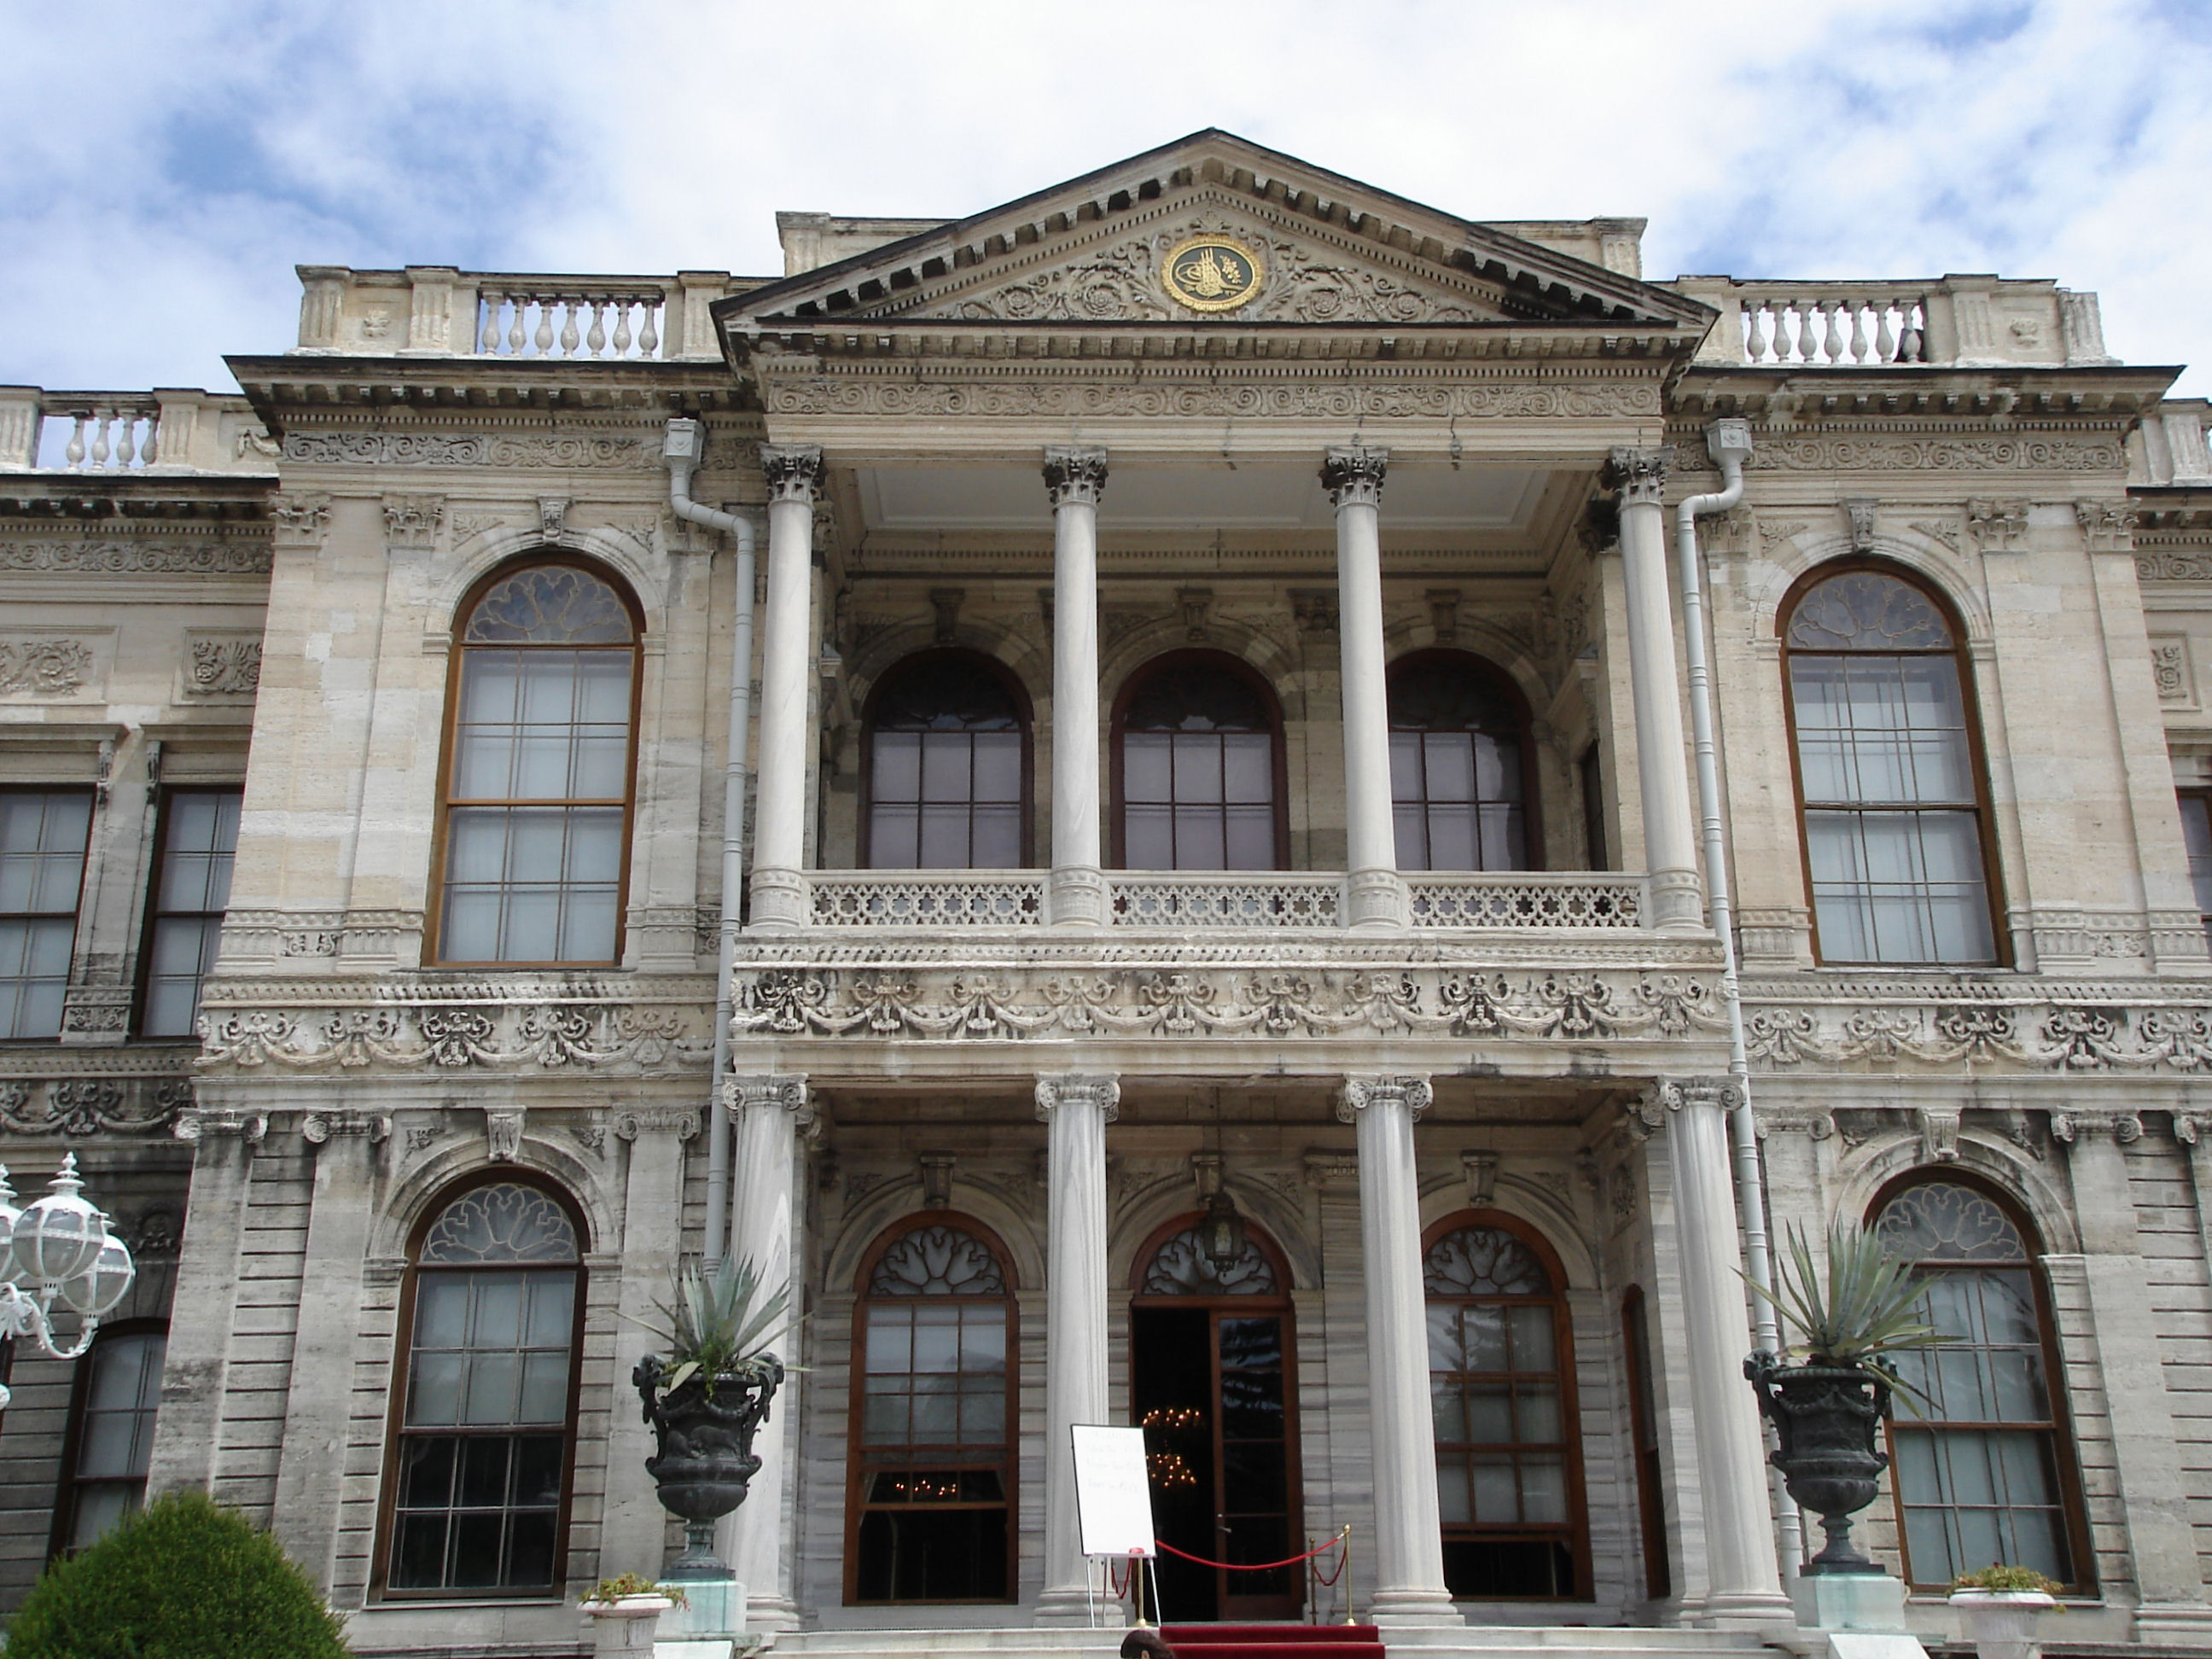 File:Istanbul Dolmabahce entrance.JPG